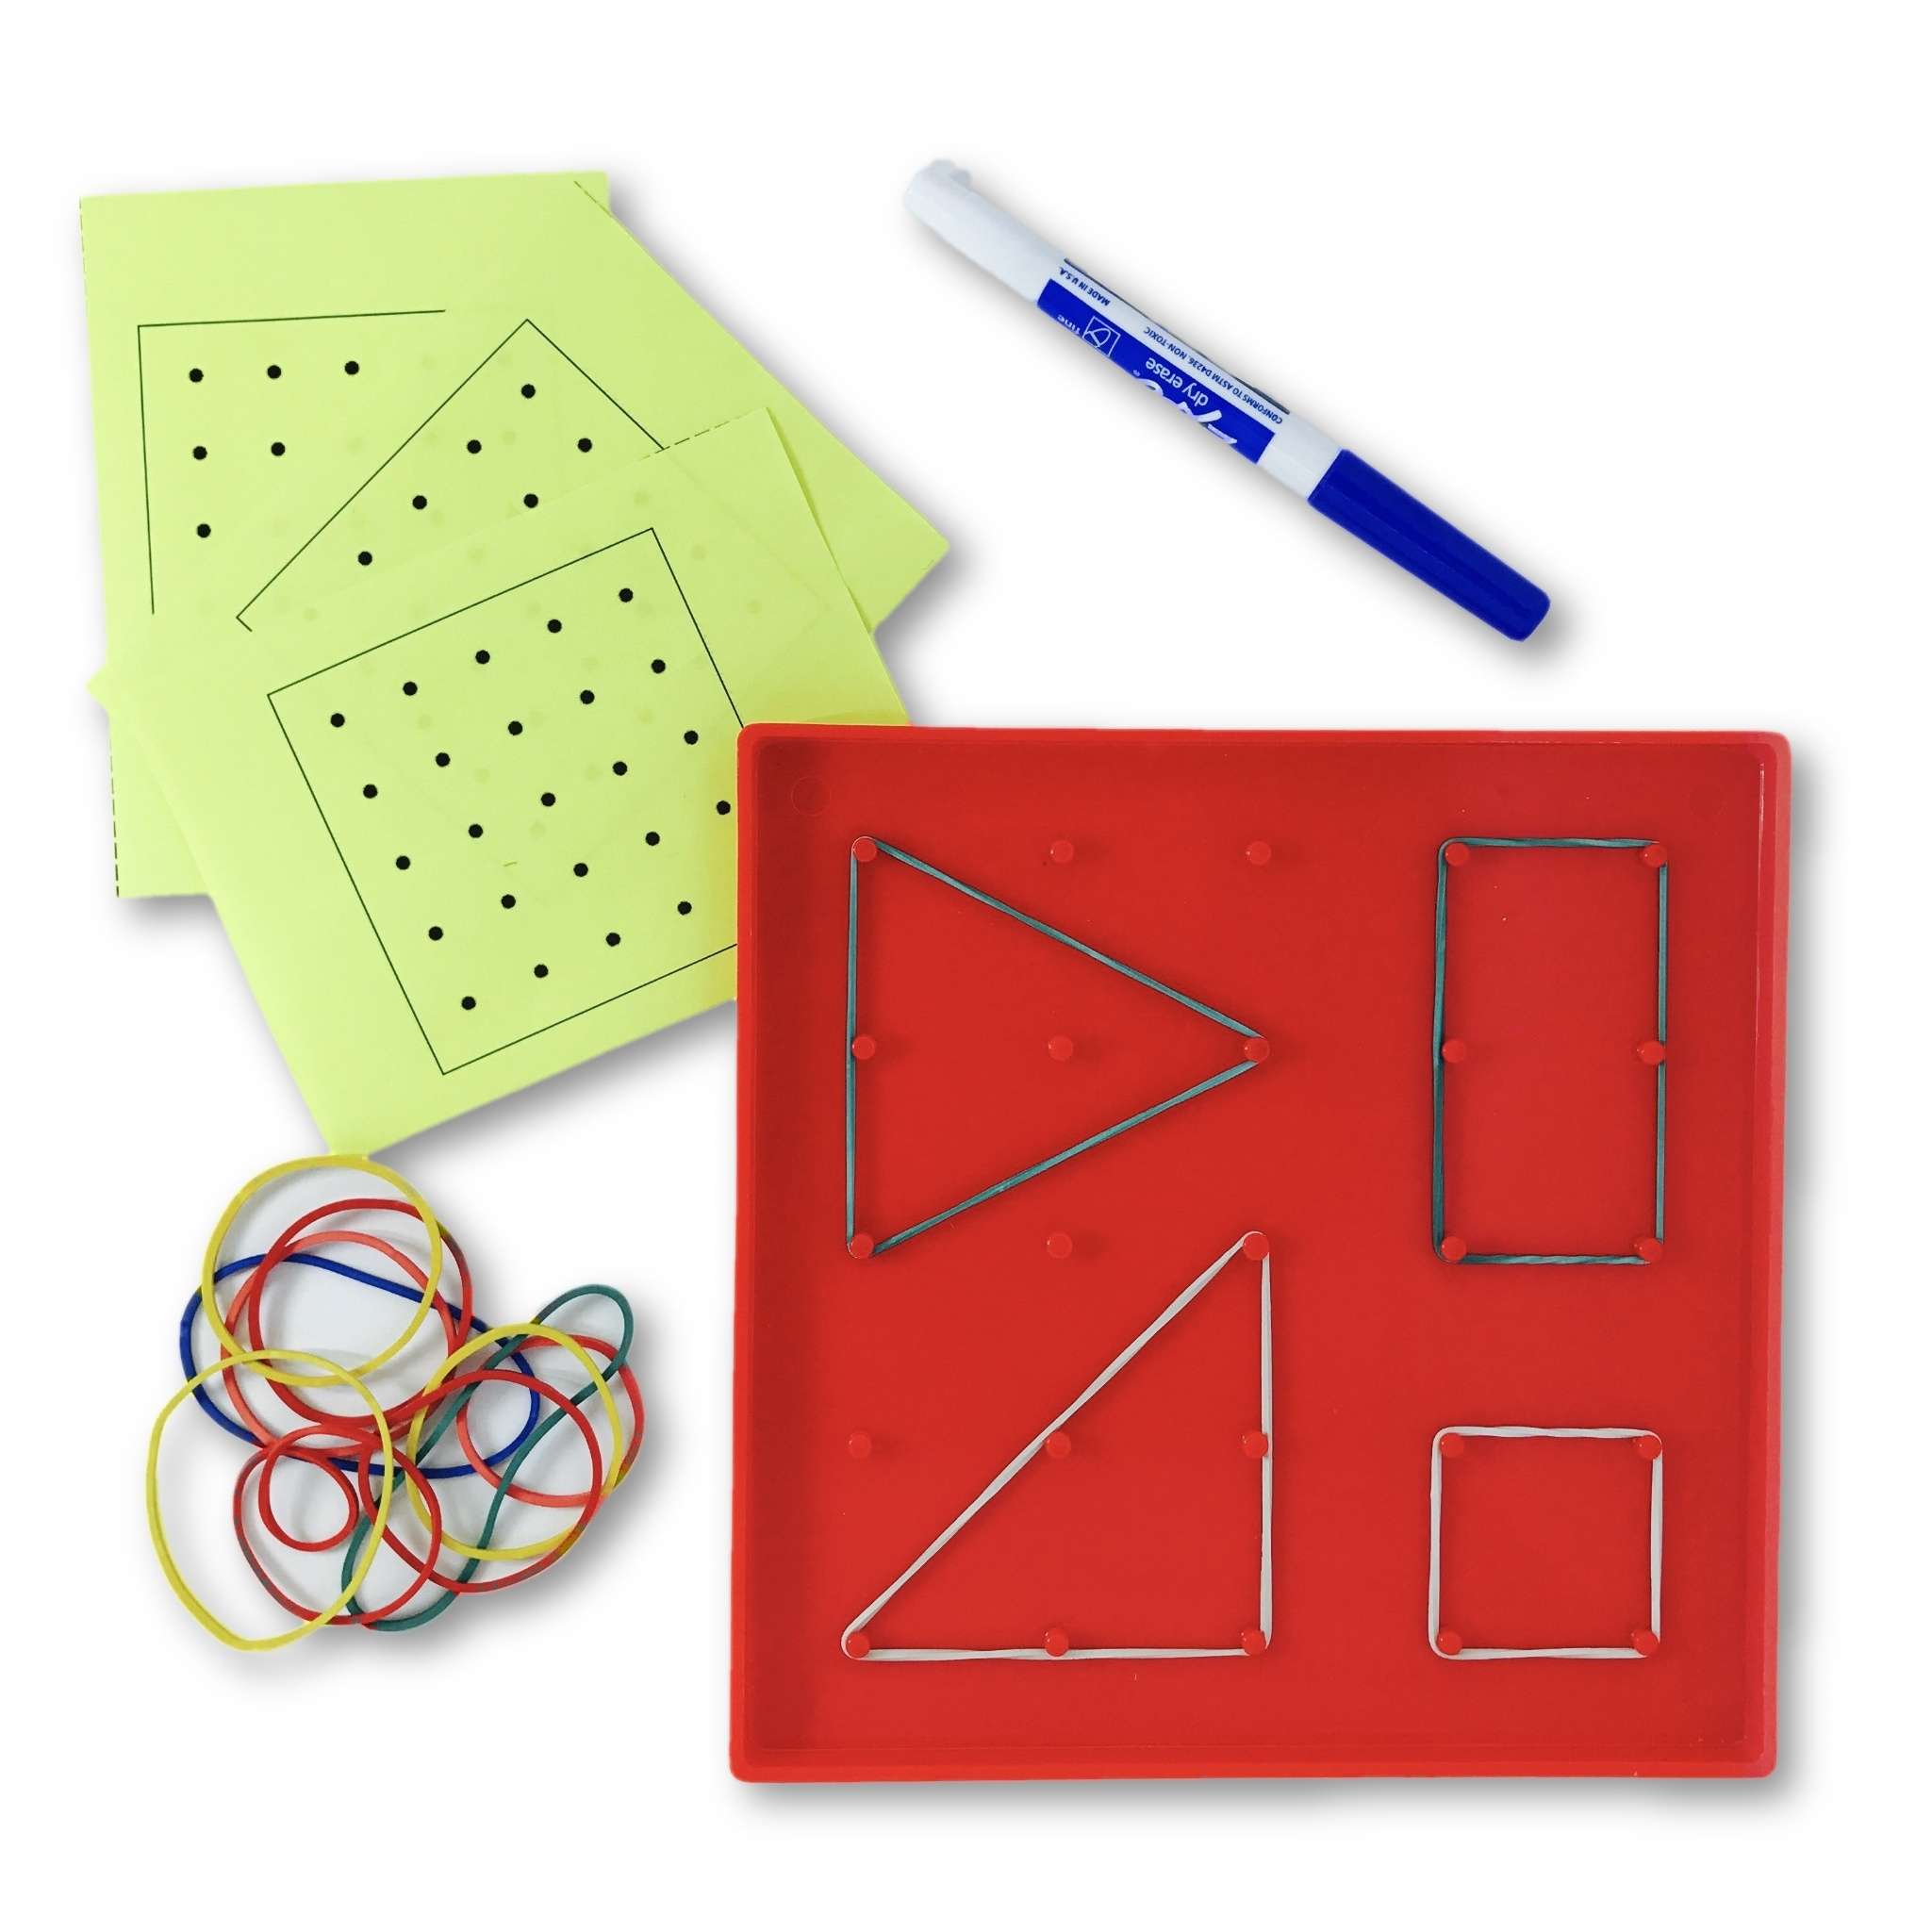 K.G.B.5 - Shapes on the Geoboard